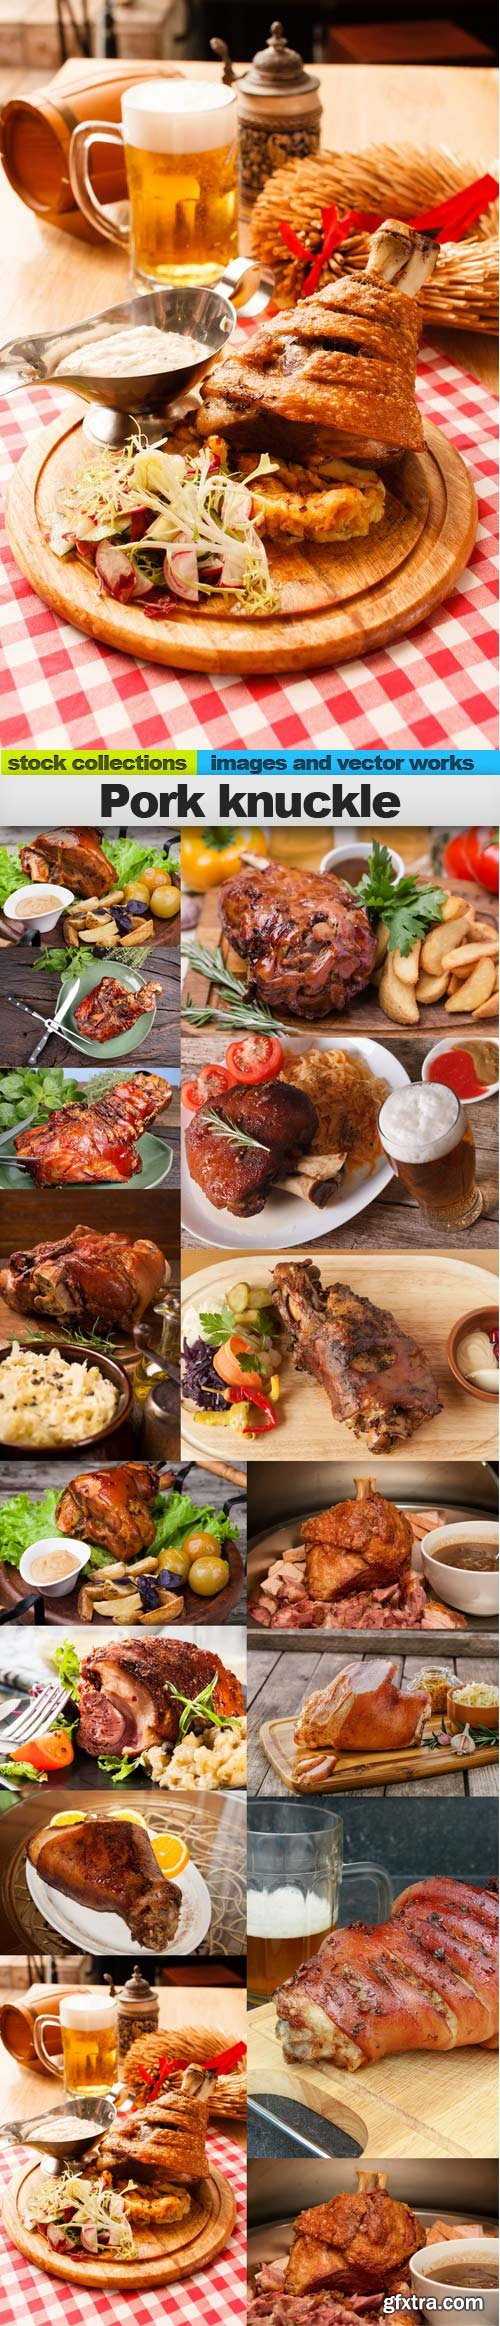 Pork knuckle, 15 x UHQ JPEG